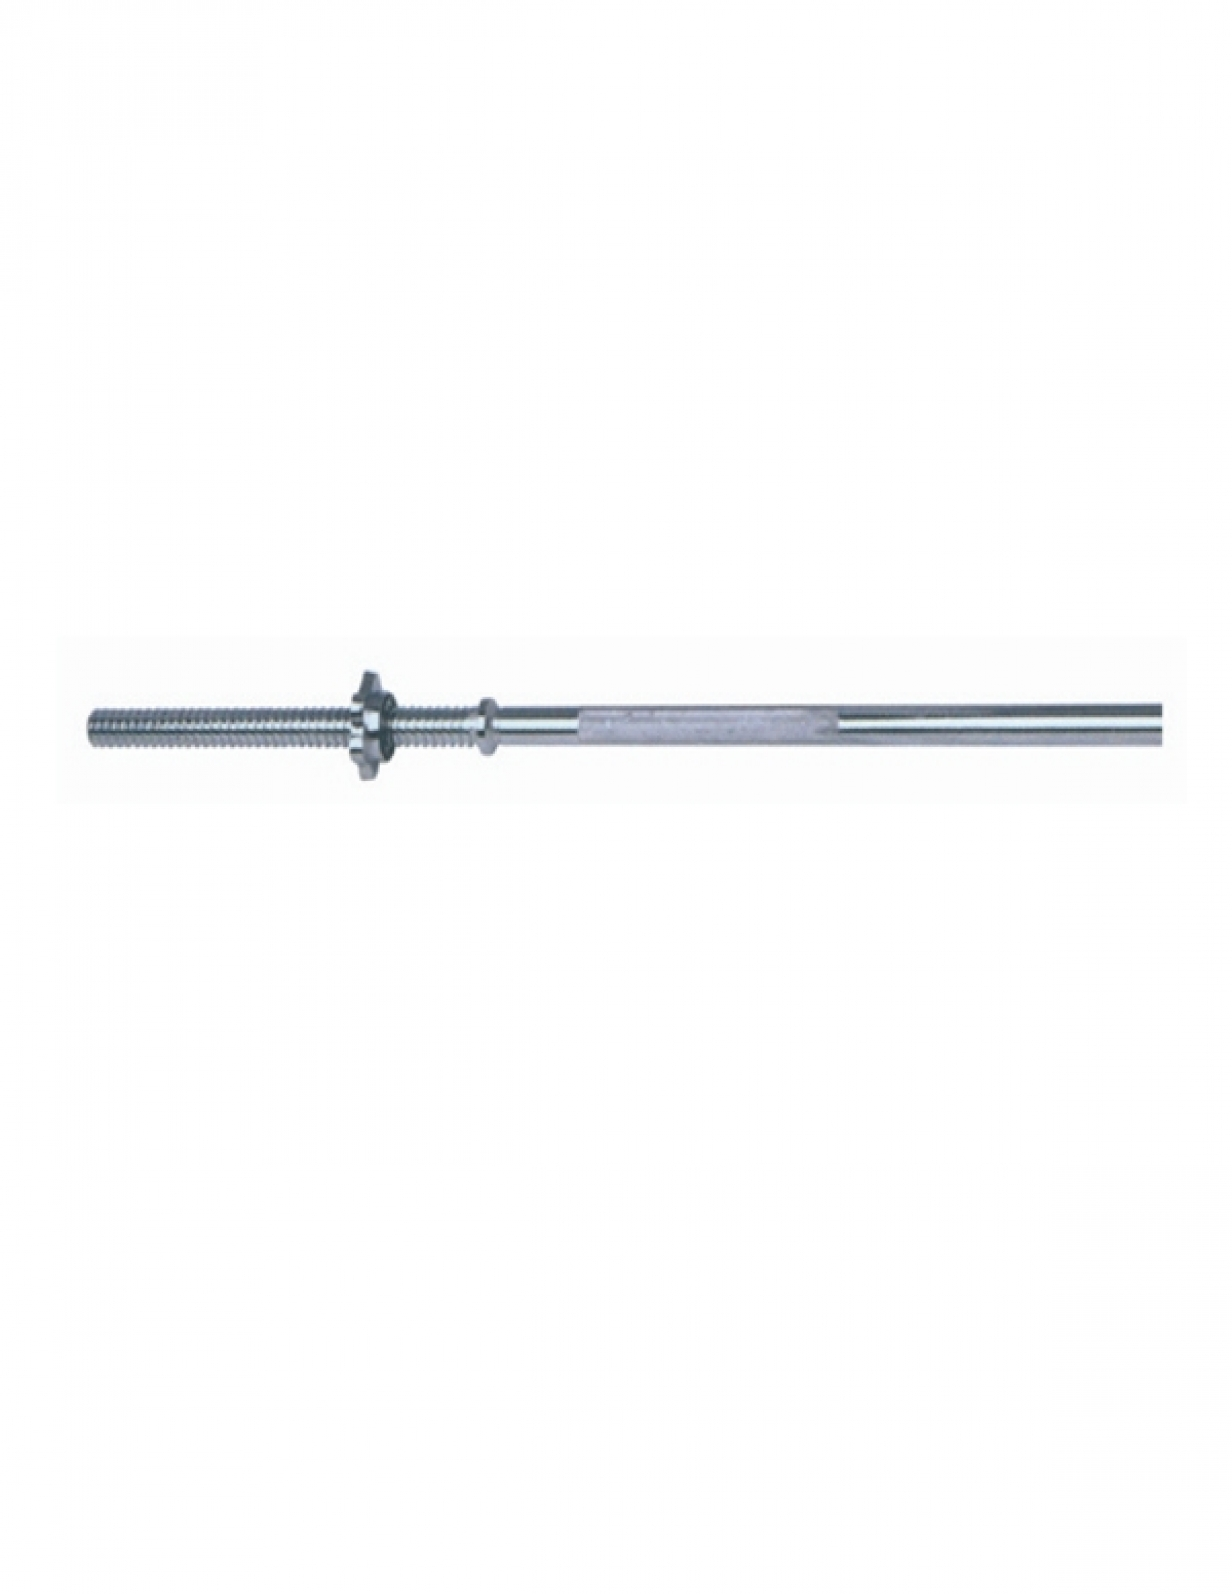 W 3711 25.4Dia Barbell Bar With Star Collar 3'